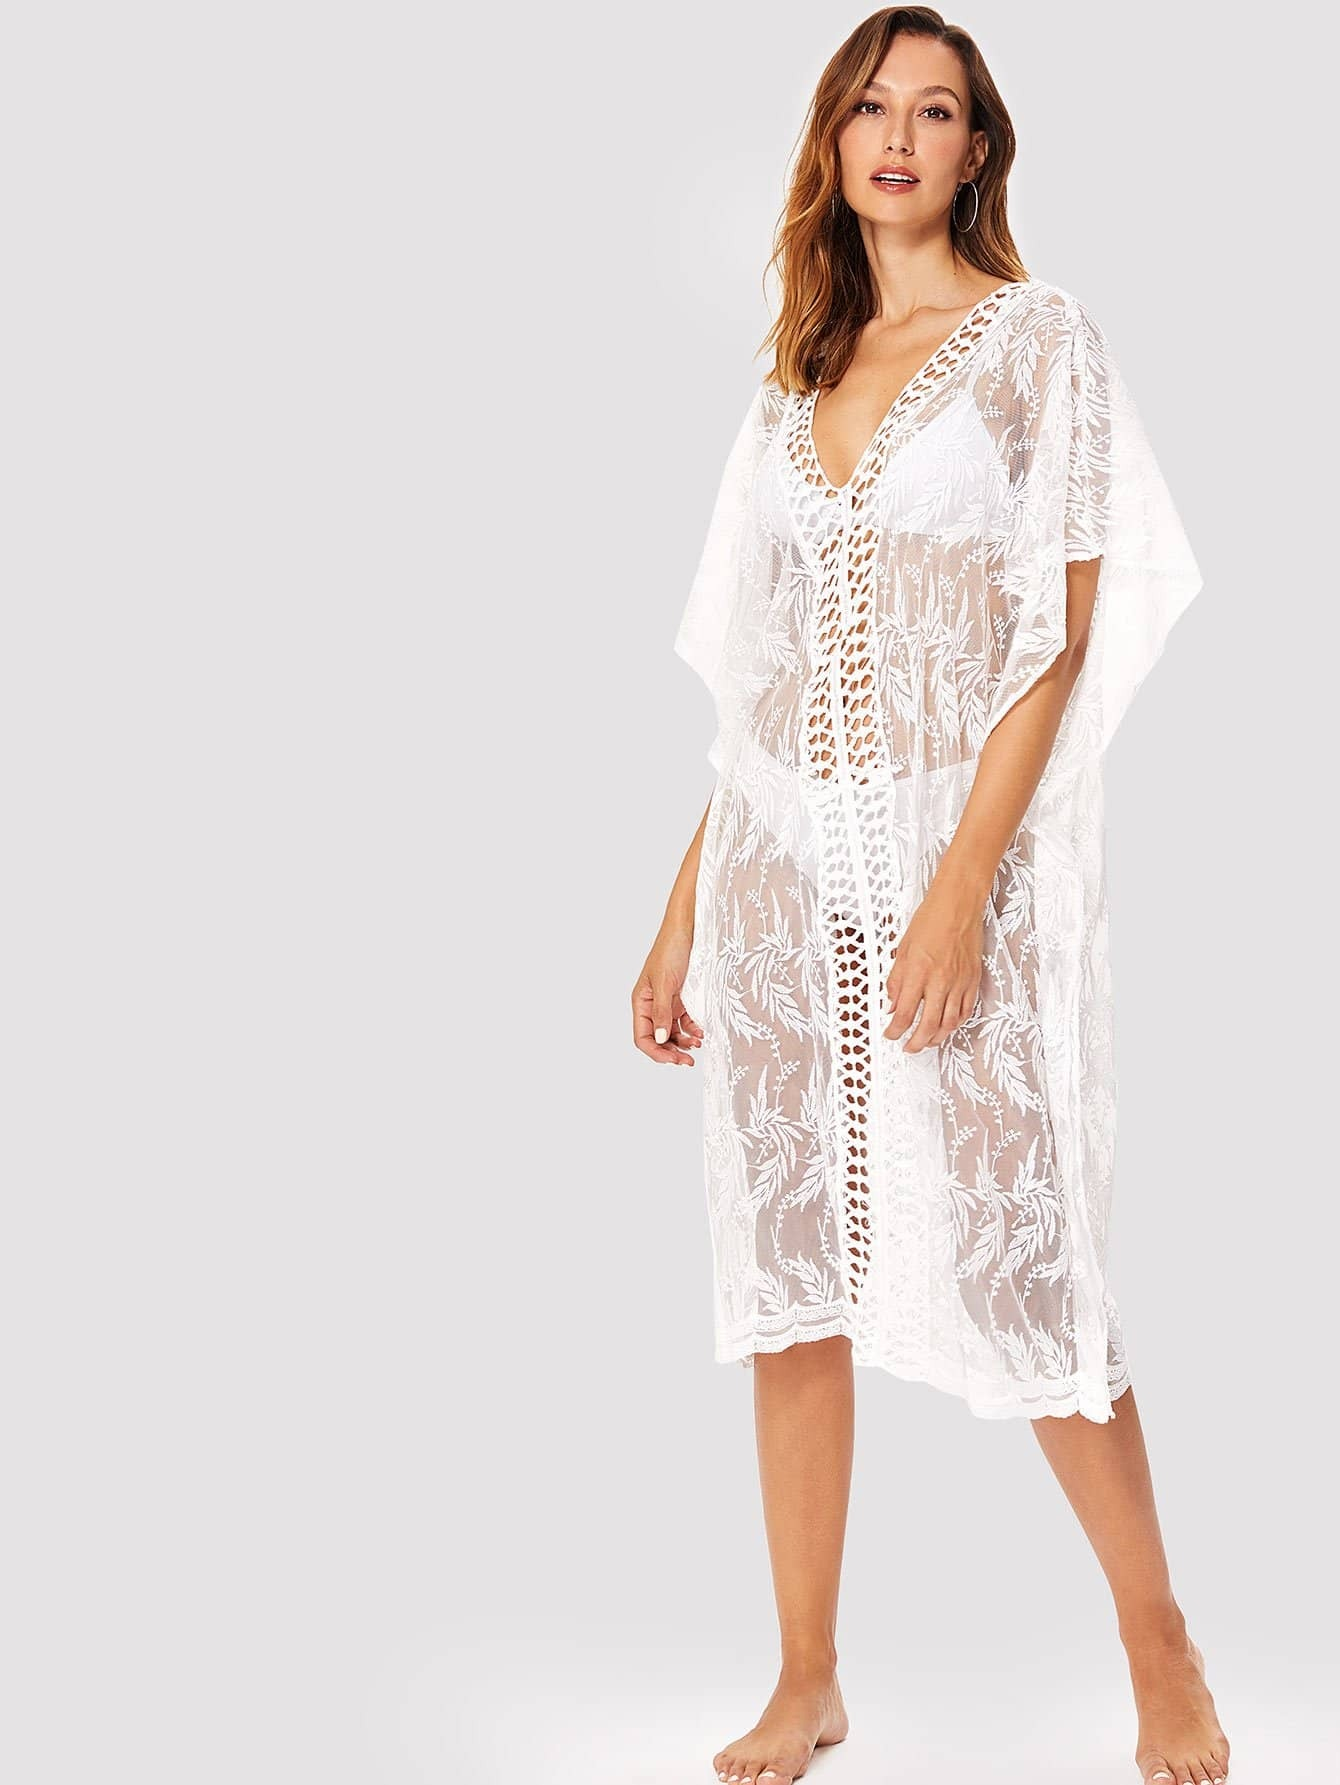 Lace Insert Embroidered Mesh Cover Up Dress plus size embroidered mesh insert party dress